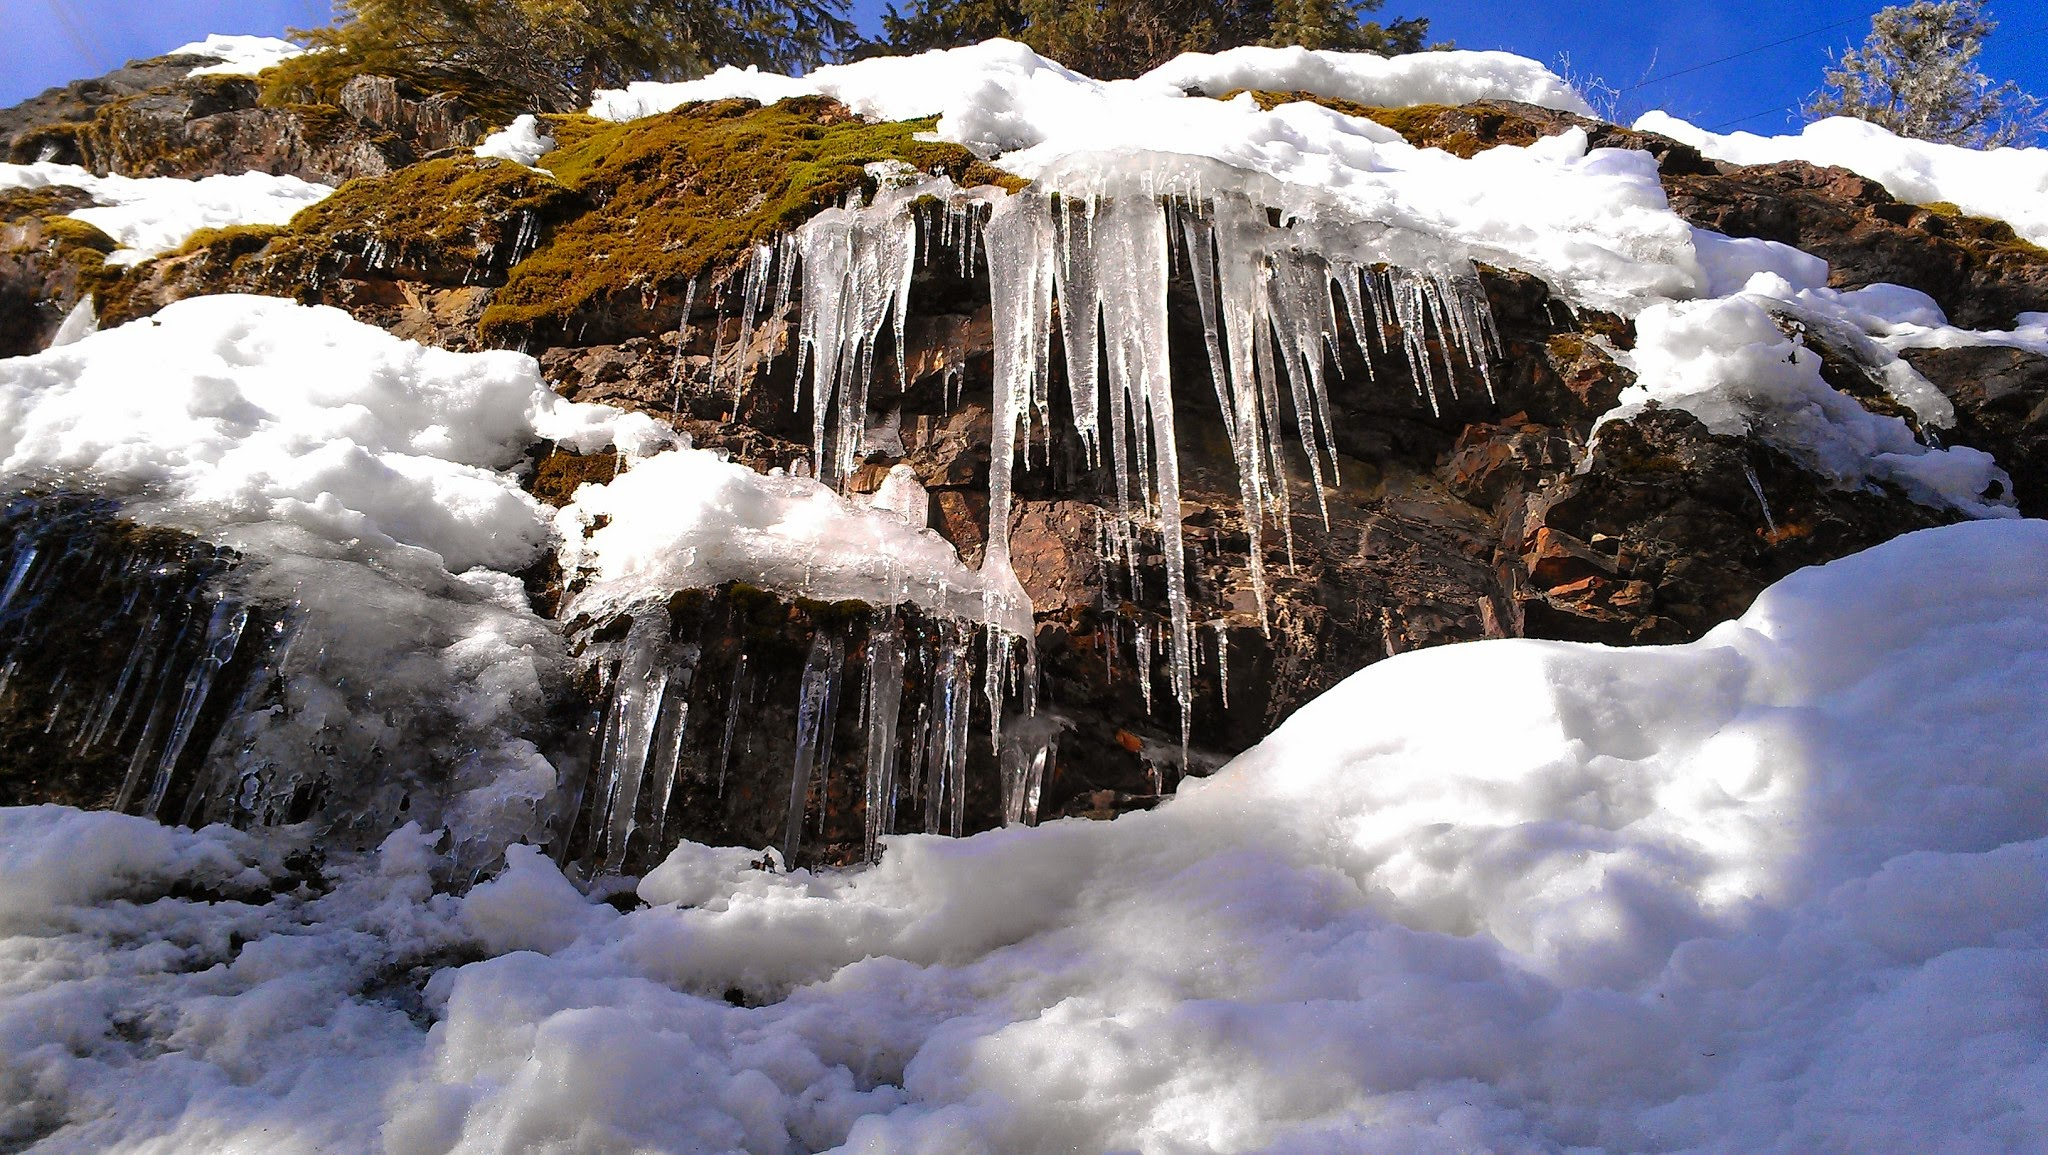 Icicles hanging from snowy rocks